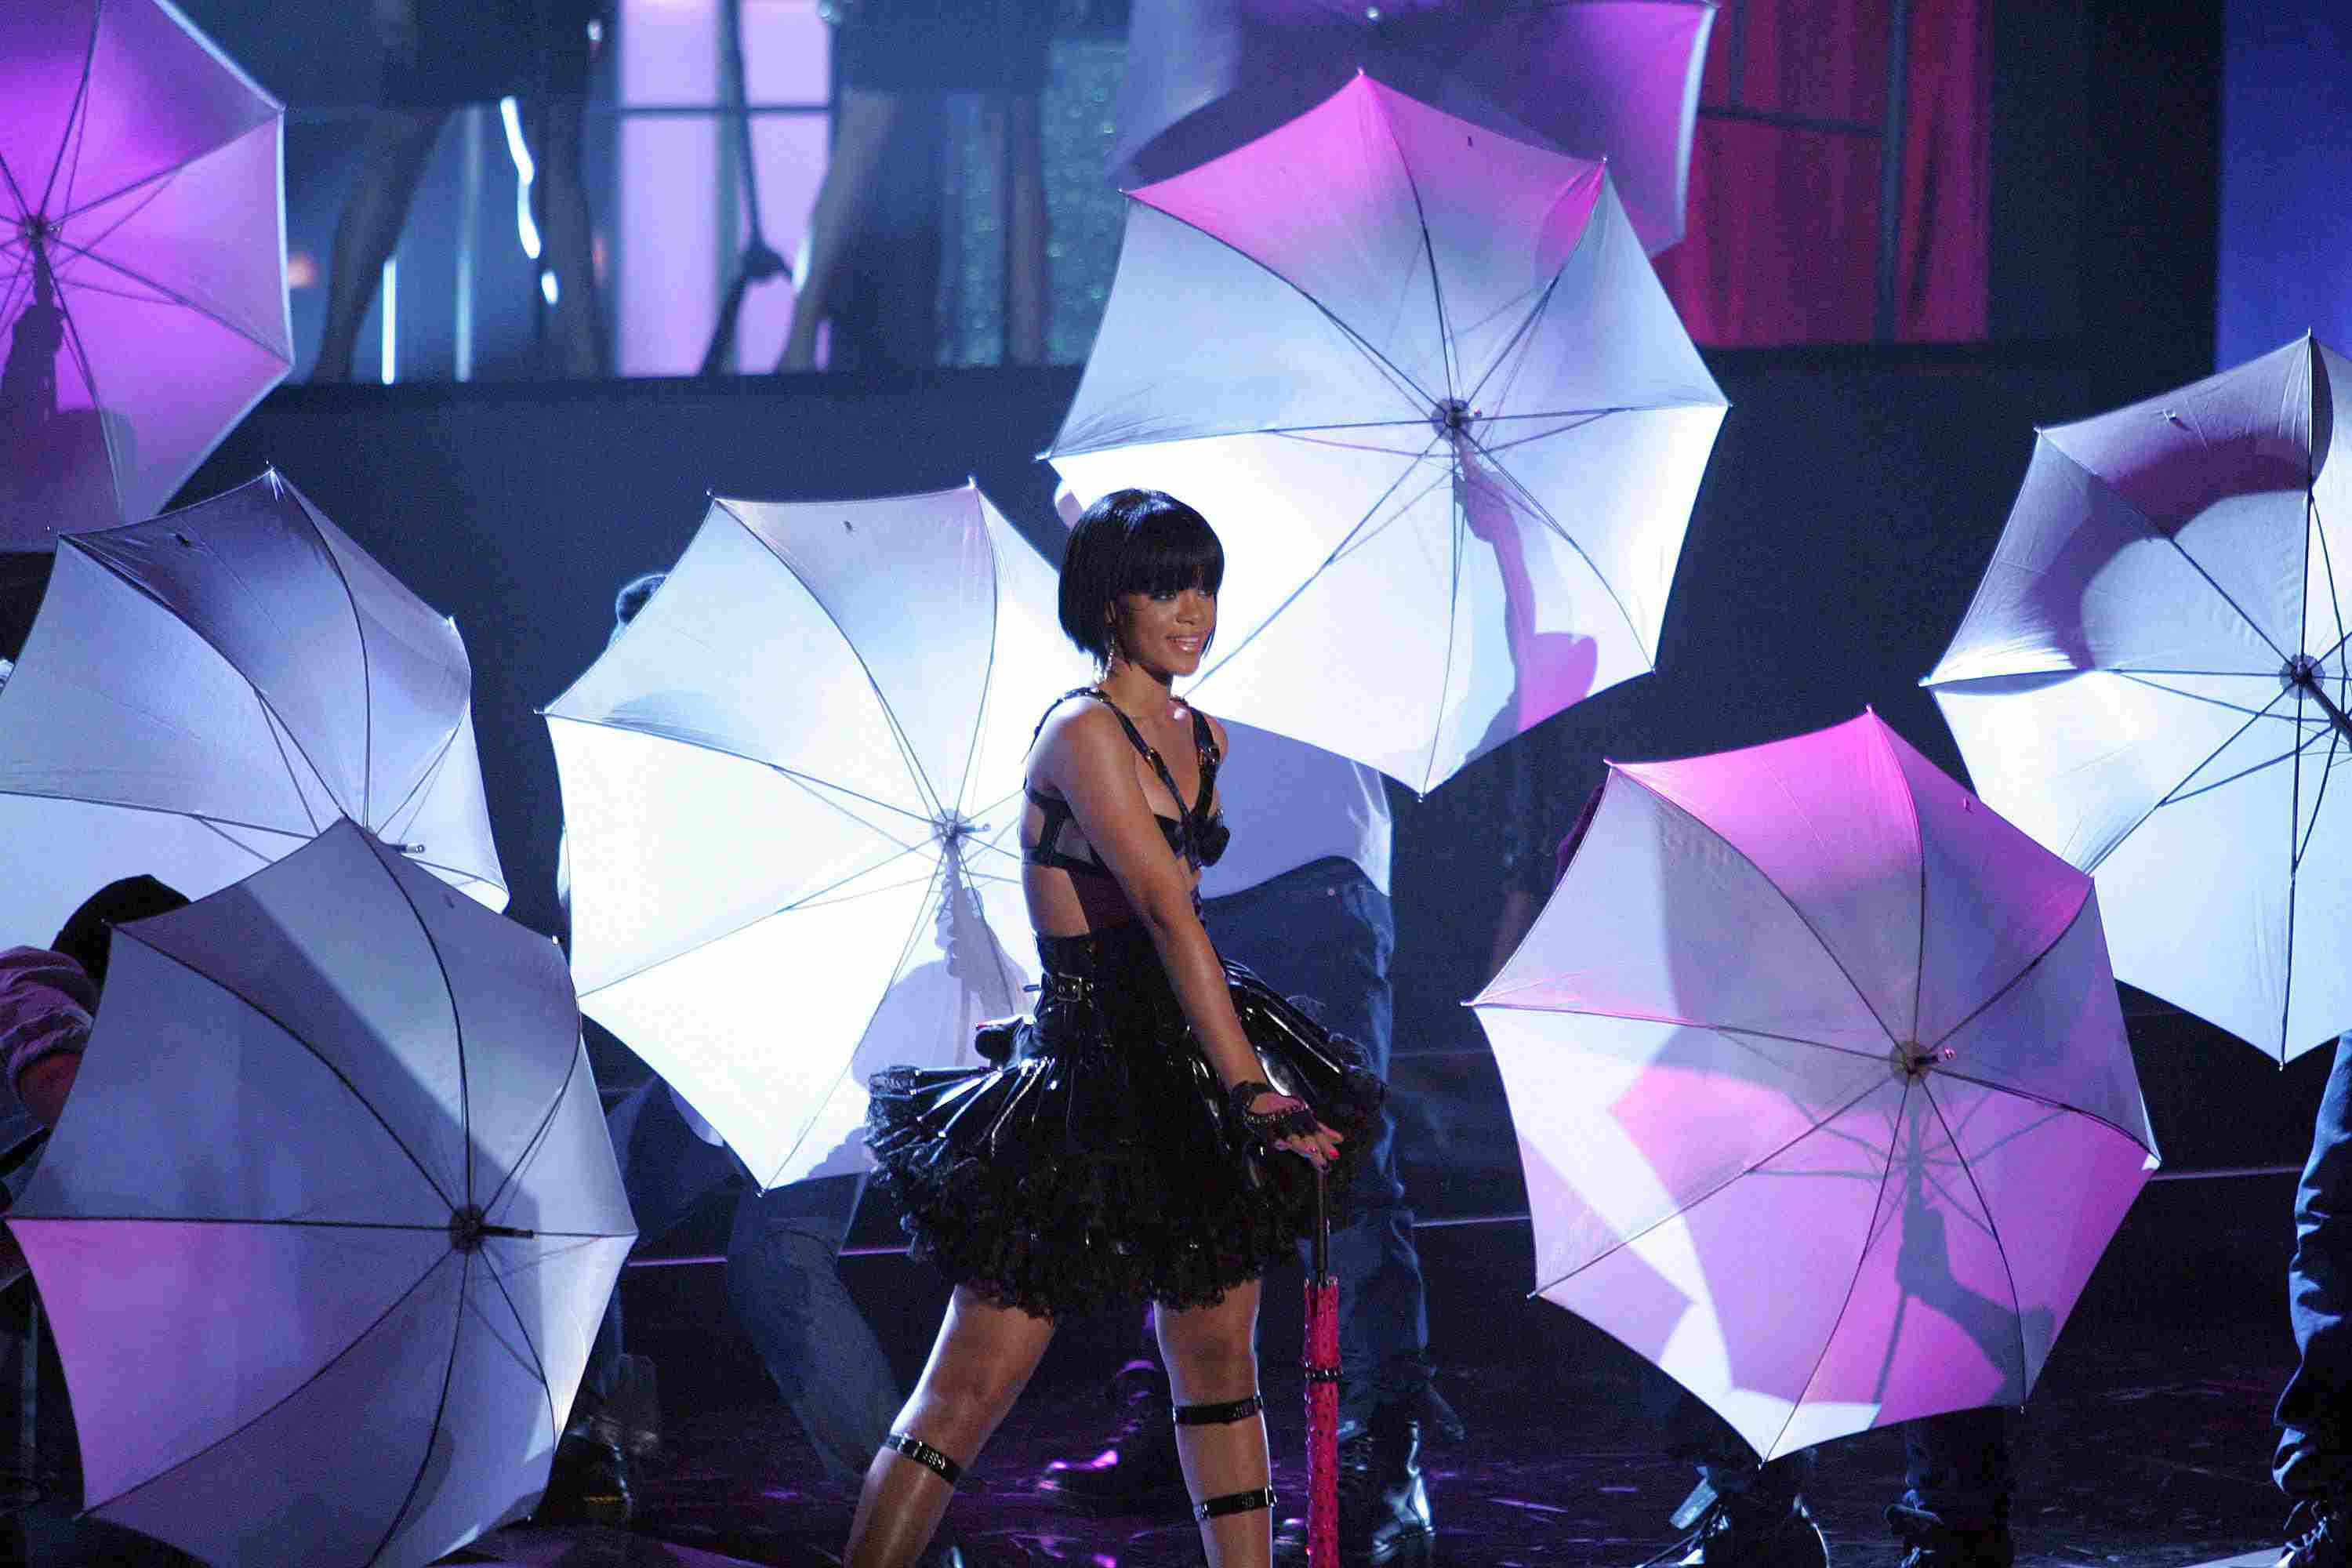 Rihanna Performing with Dancers Holding Umbrellas